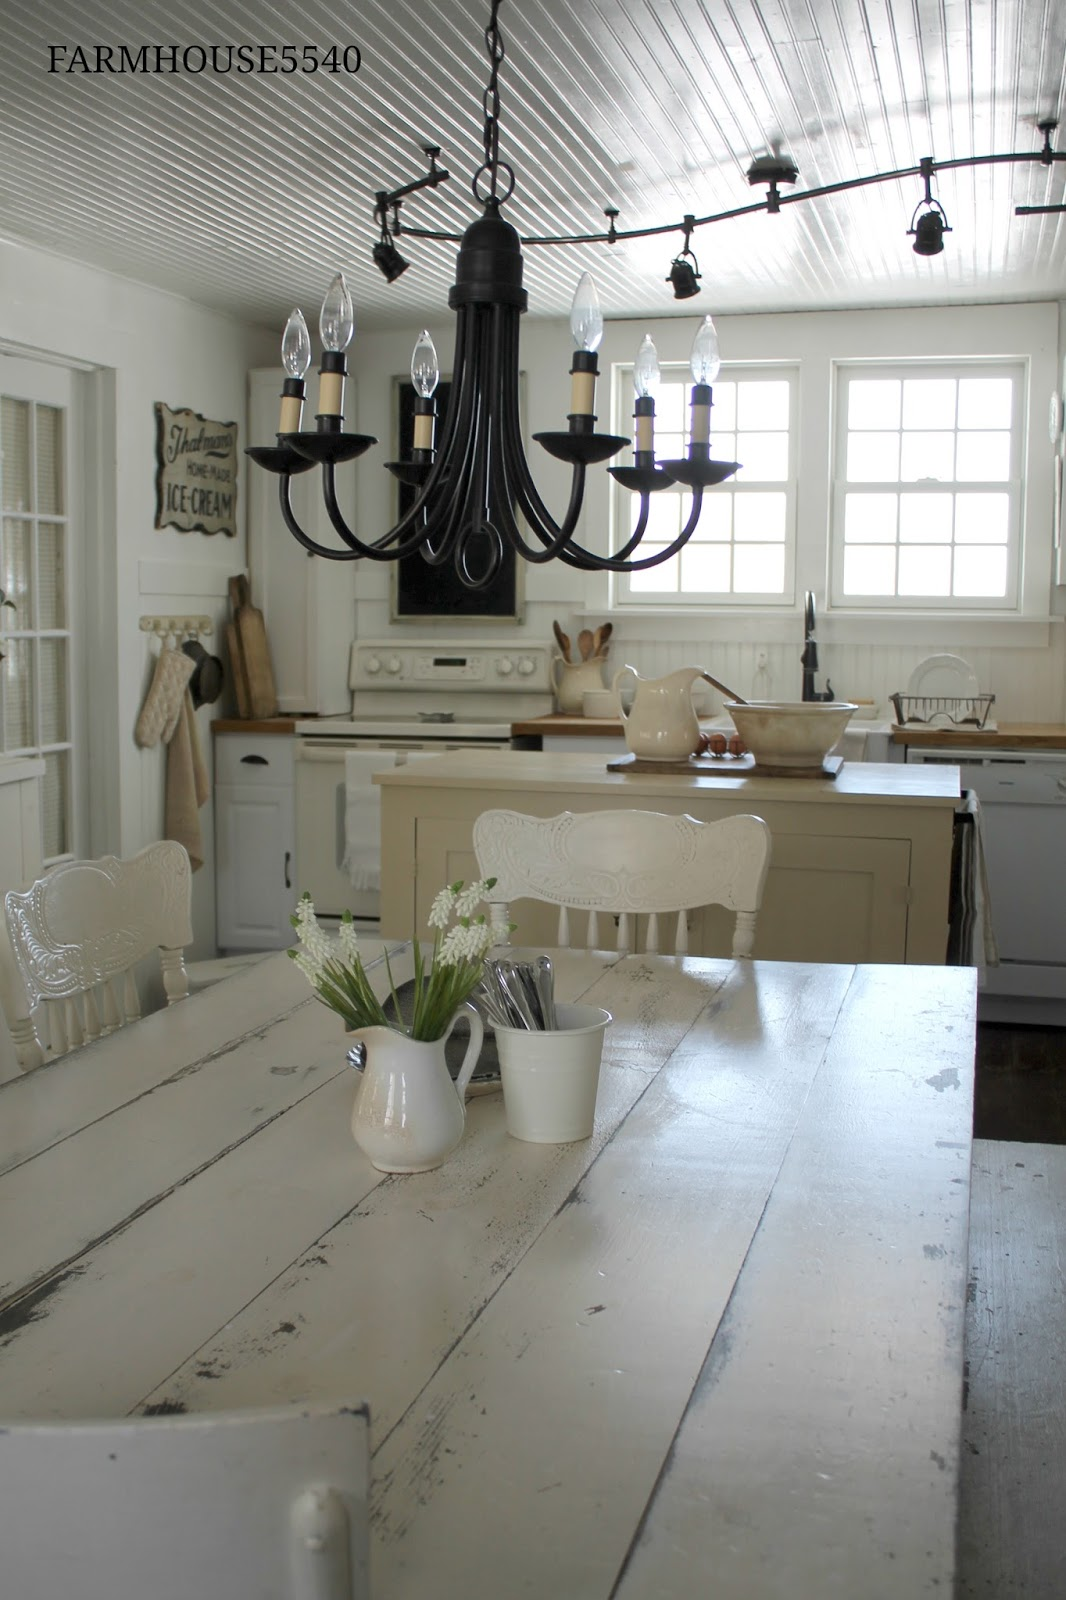 Farmhouse 5540 weekly inspiration our farmhouse kitchen for Farmhouse kitchen design pictures